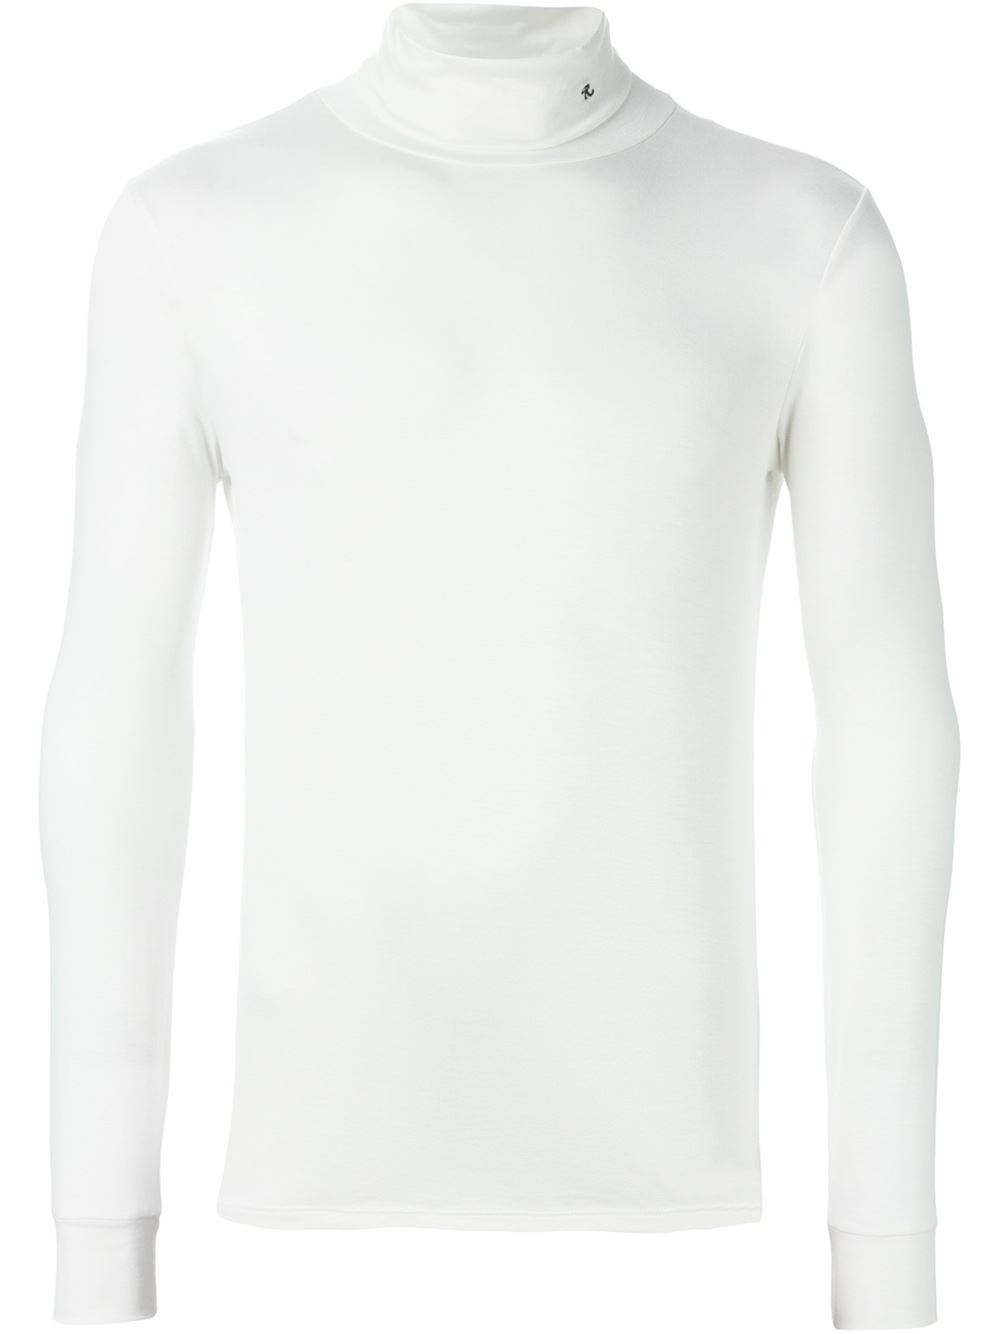 raf-simons-white-roll-neck-sweater-product-3-441371121-normal.jpeg